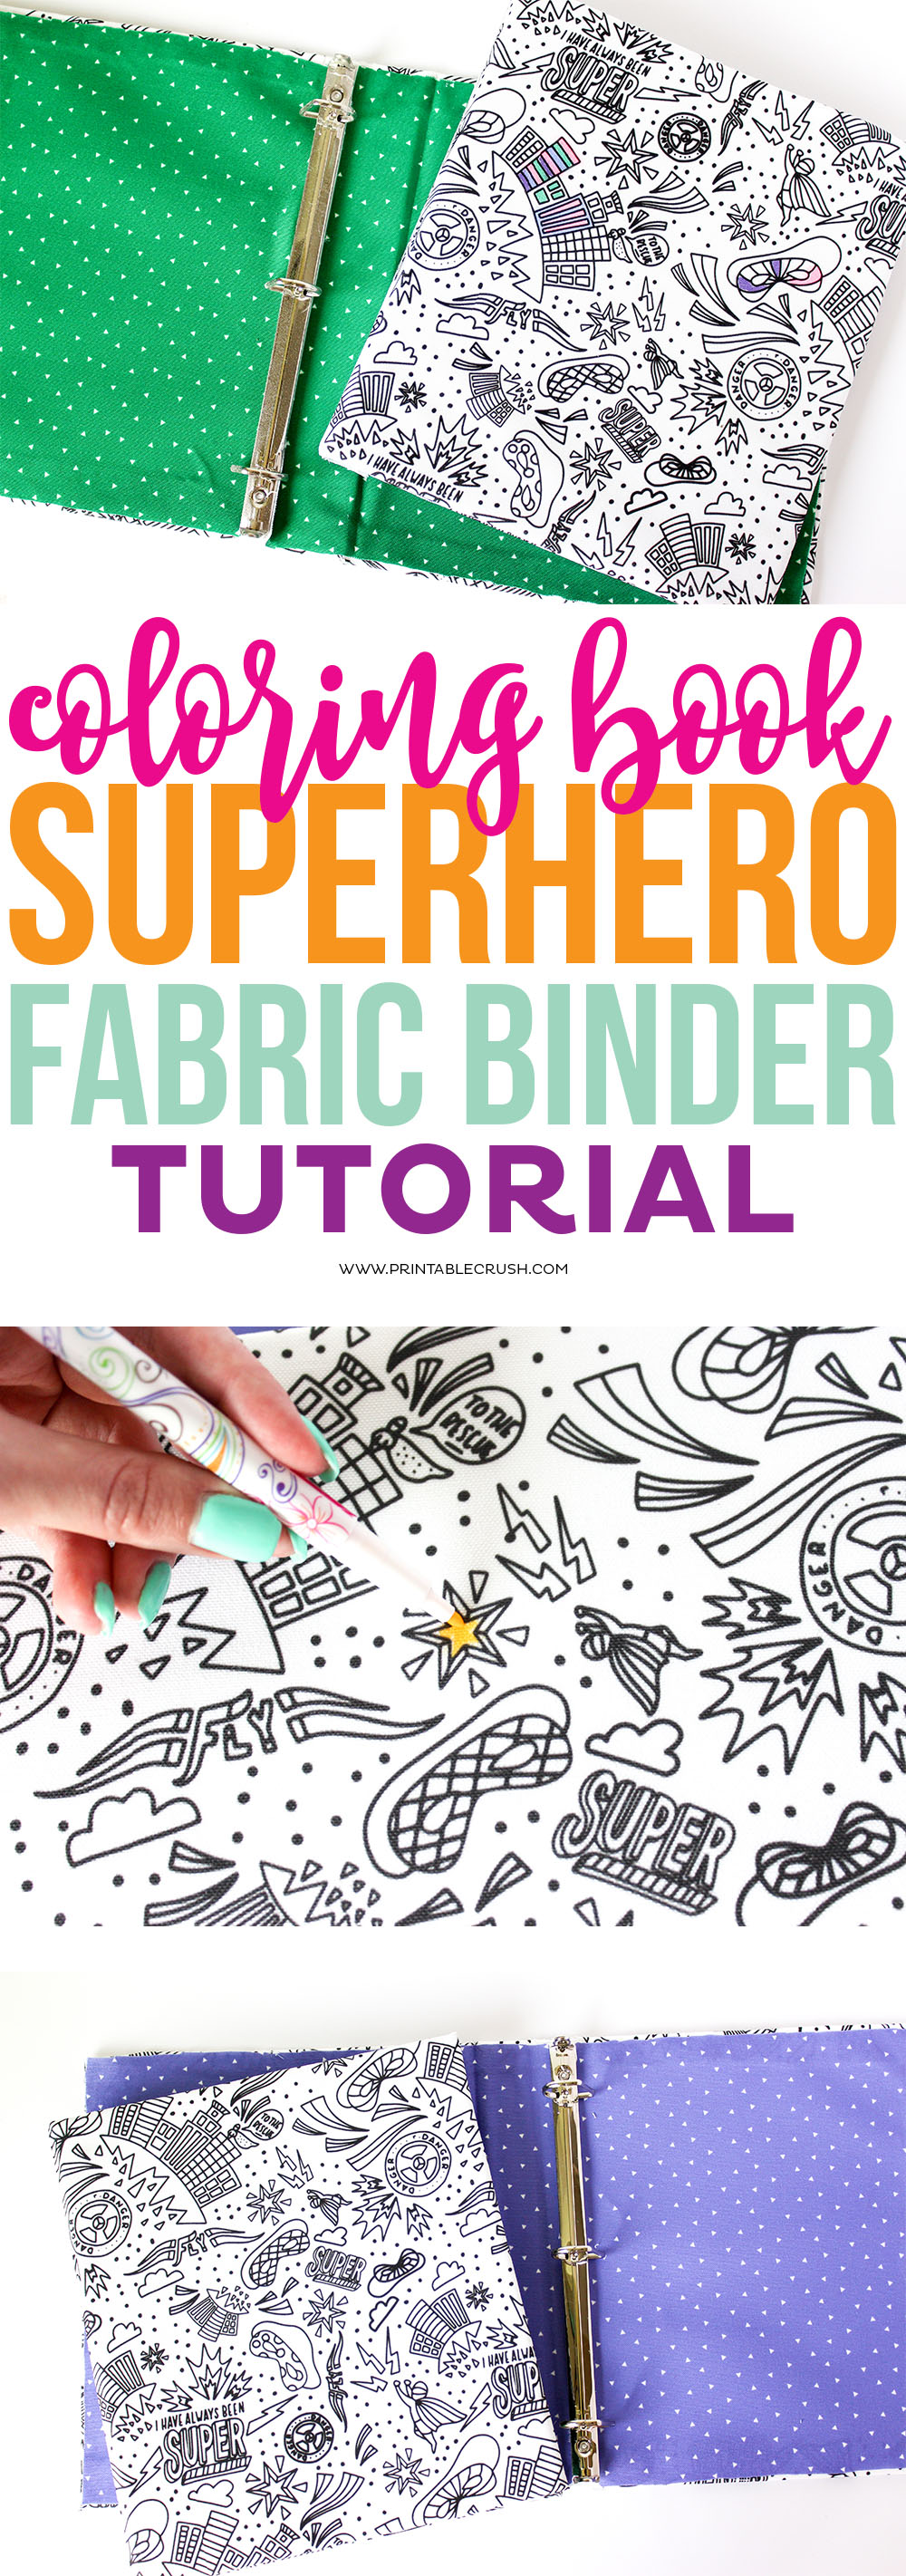 This Coloring Book Superhero Fabric Binder Tutorial is a great back to school project! Your kids will have a fun and unique binder this year. via @printablecrush